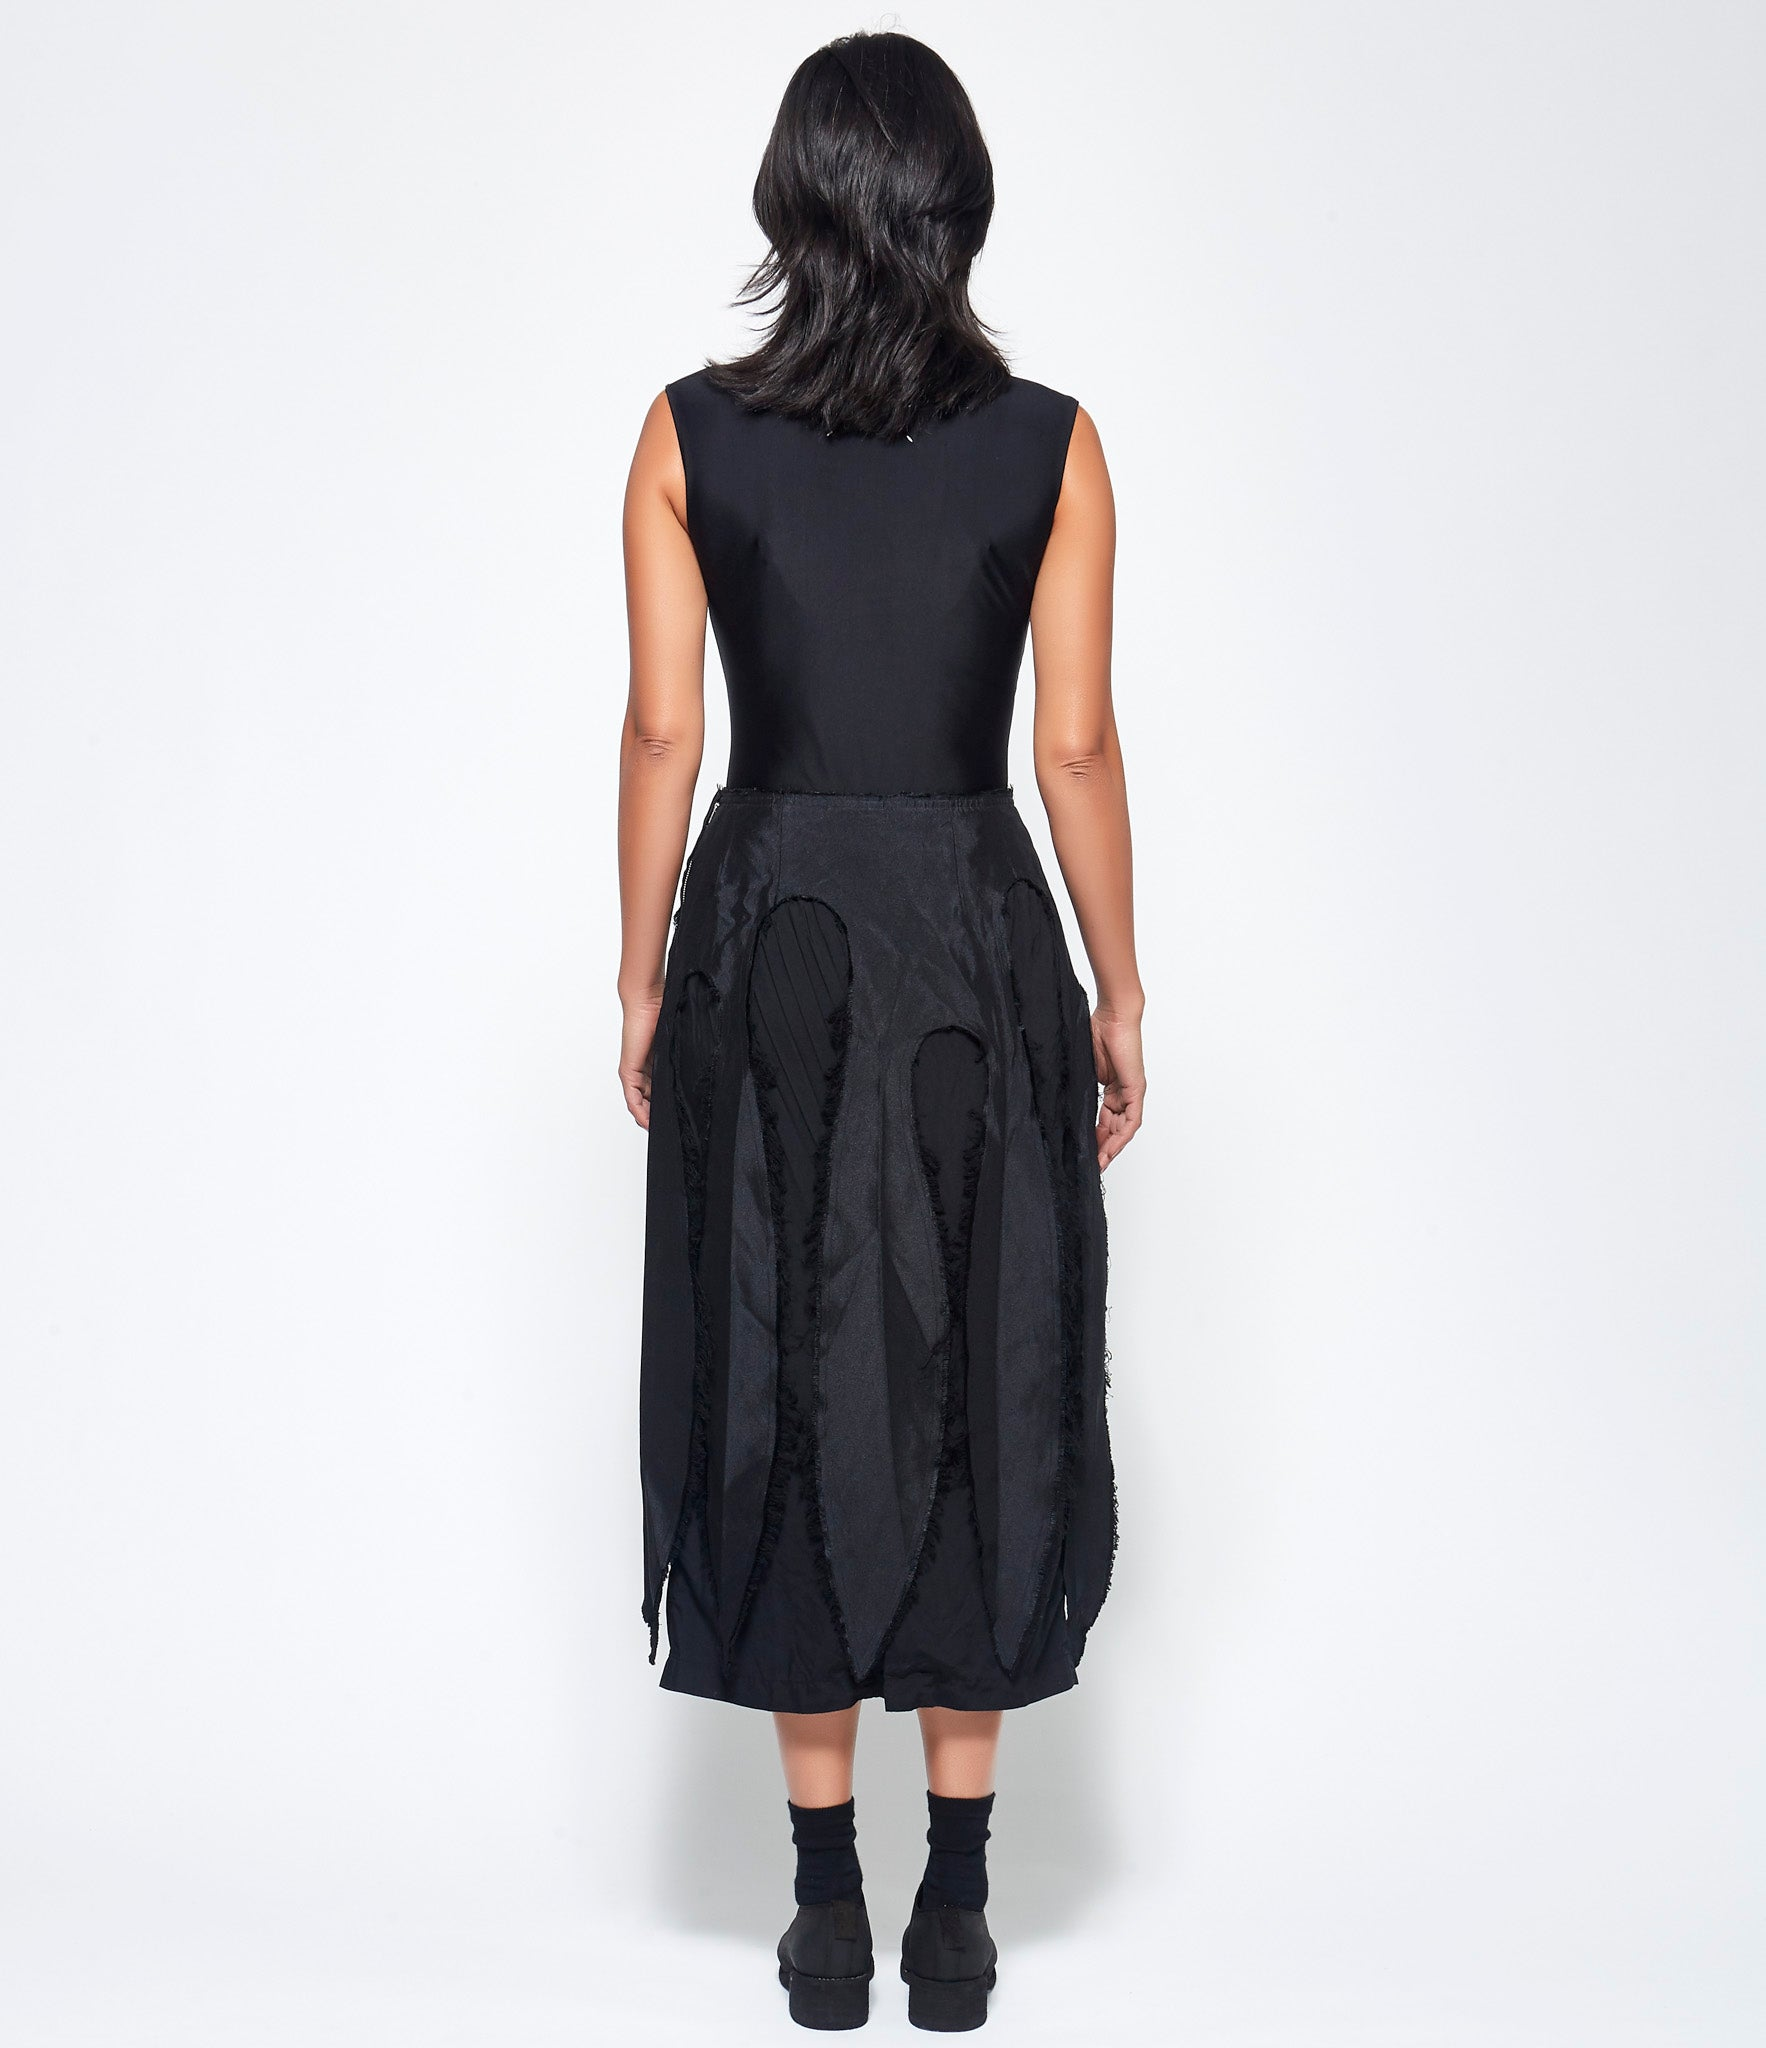 Comme Des Garcons Garment Treated Polyester Satin x Polyester Spun Broad Skirt